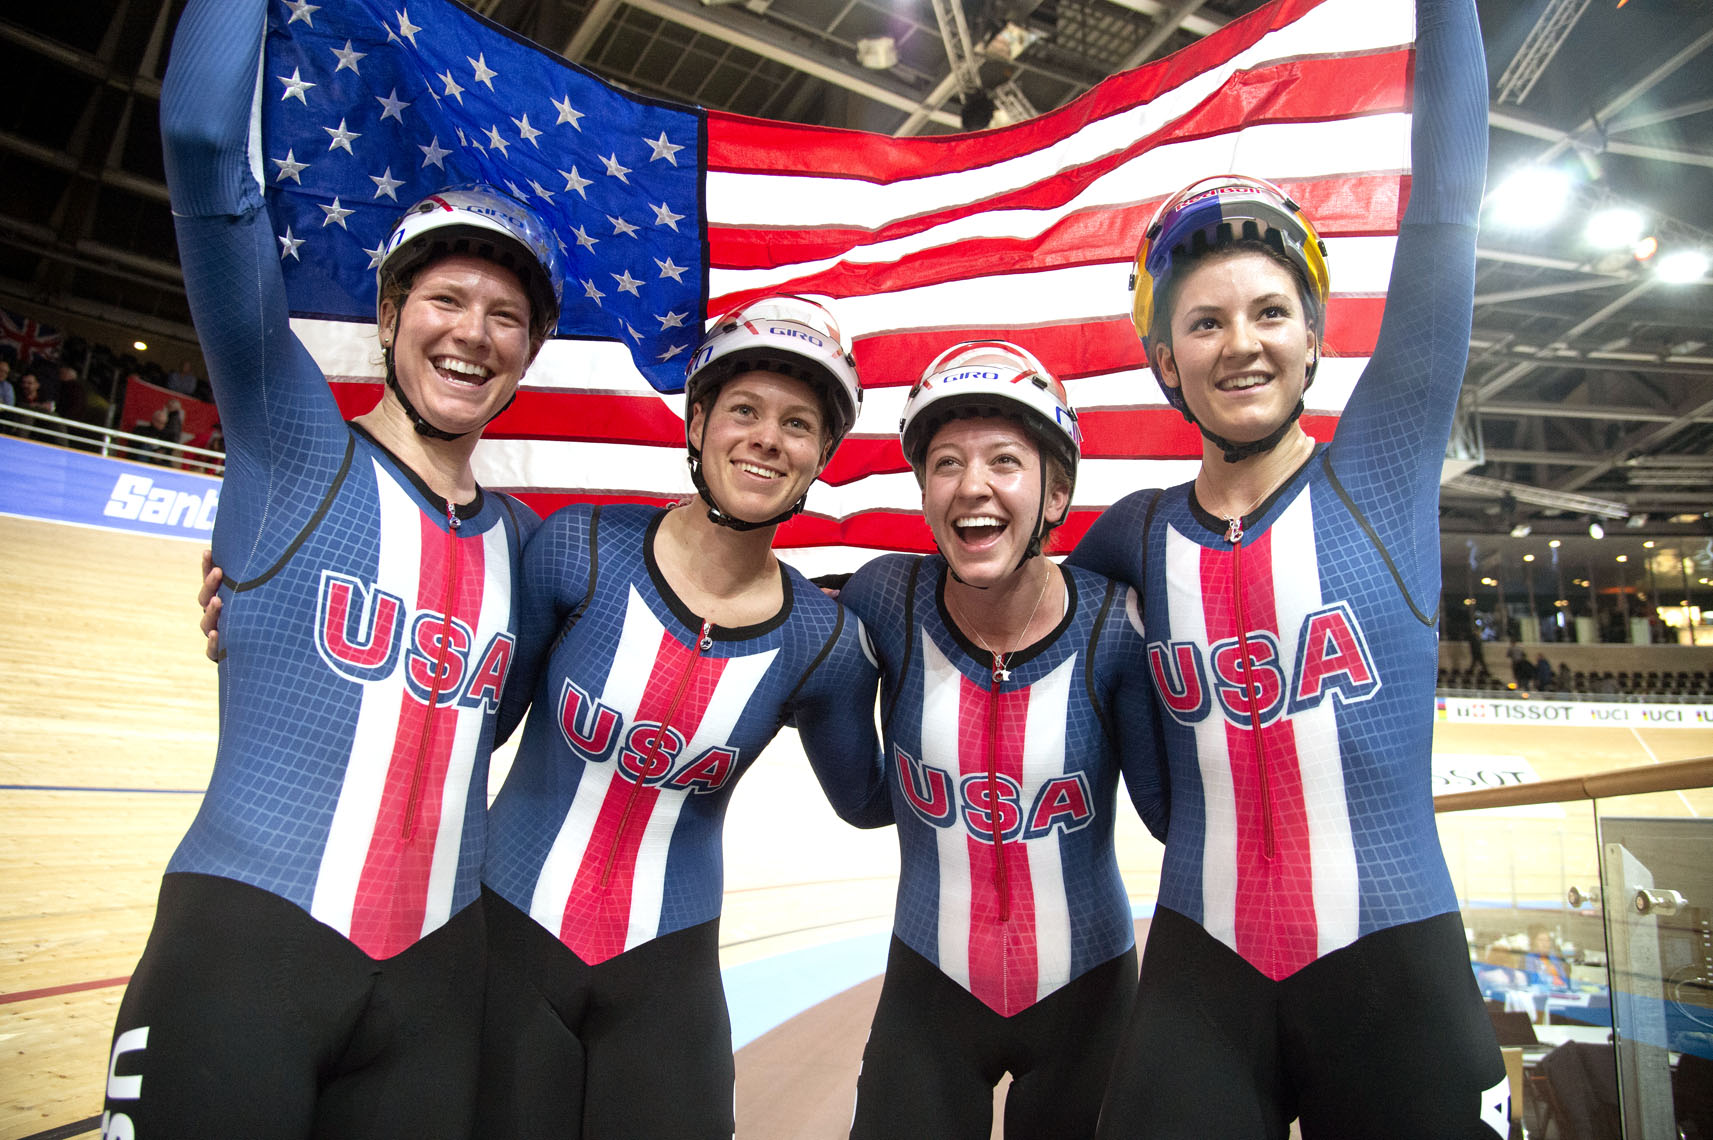 USA Team Pursuit World Champions, Track Worlds, Berlin.